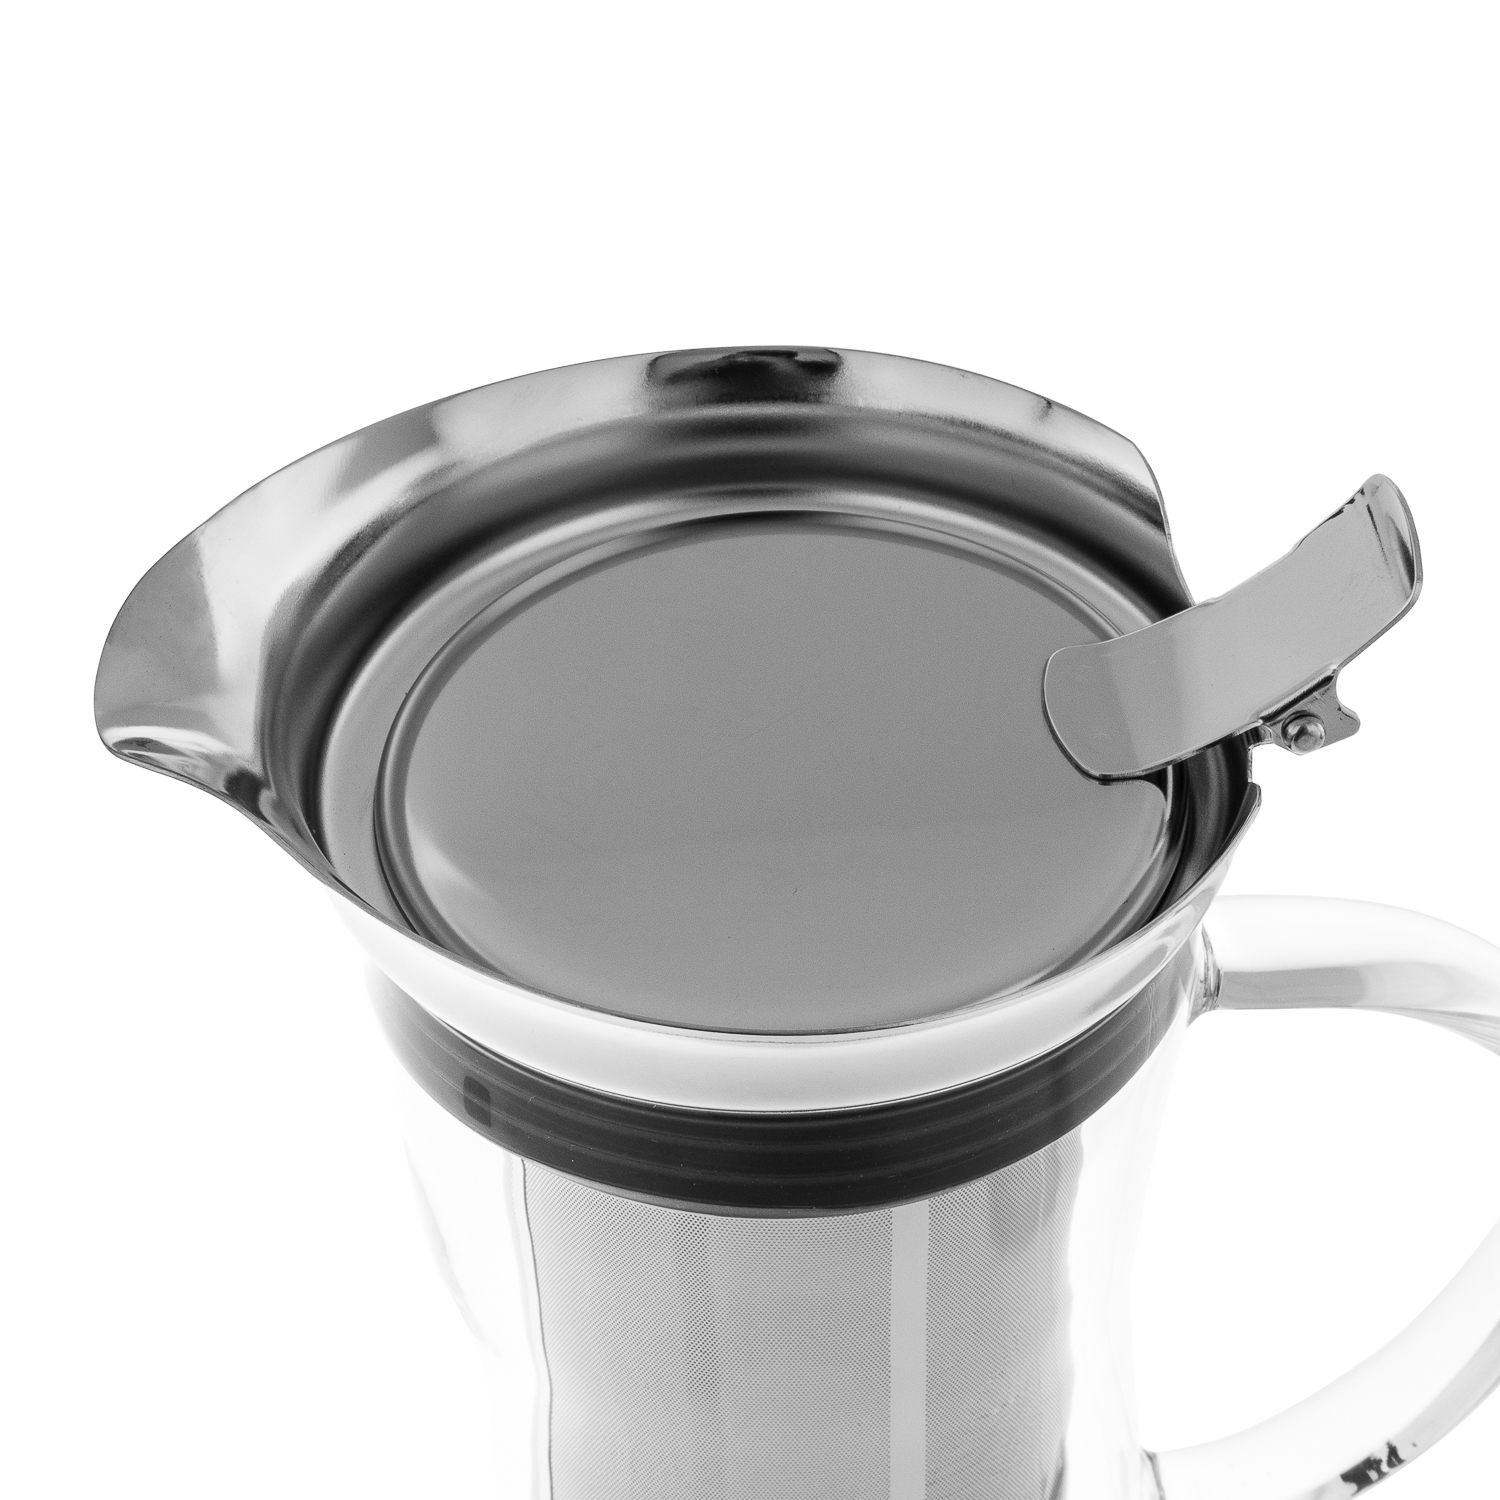 Hario Cold Brew Coffee Pitcher 1l. 2 reviews Read reviews. Hario Cold Brew Coffee Pitcher 1l. Hario Cold Brew Coffee Pitcher 1l